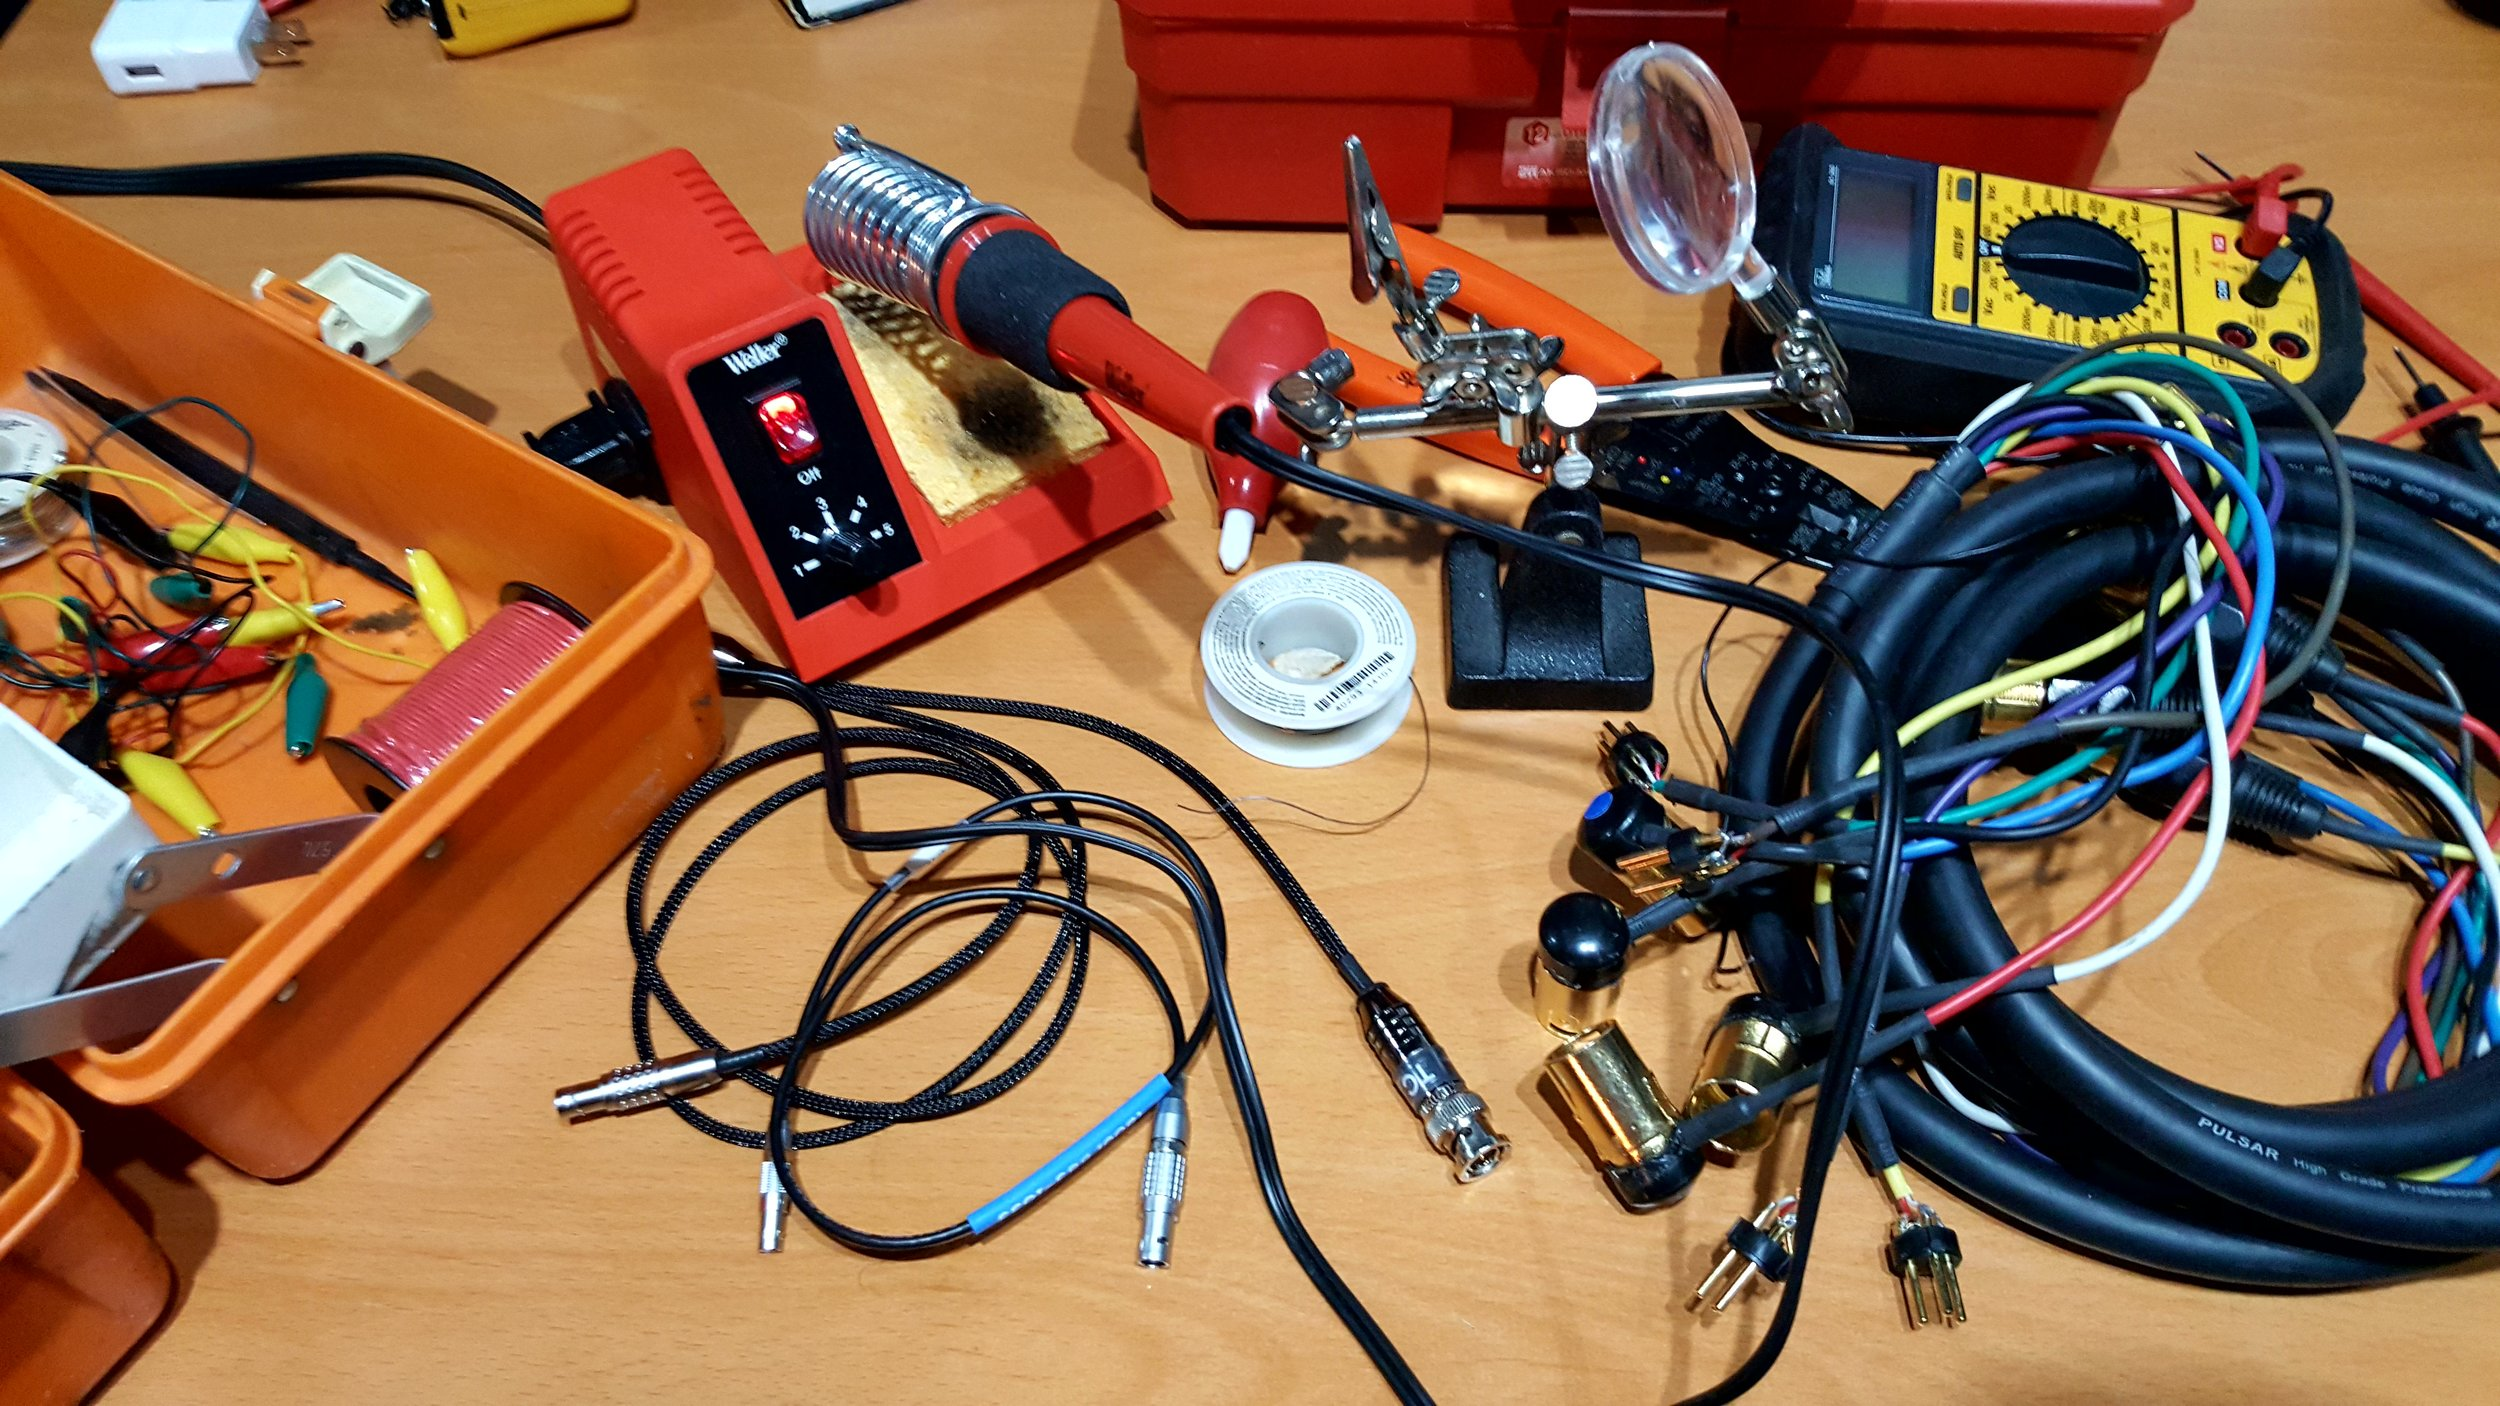 Accessories & Customized Solutions - My gear packages come along with every accessory needed to ensure proper and reliable function as well as the knowledge of how to maintain or modify equipment if needed. Prior to your shooting date, we'll have the opportunity to discuss specific technical aspects and alleviate any concerns before we ever step on set.